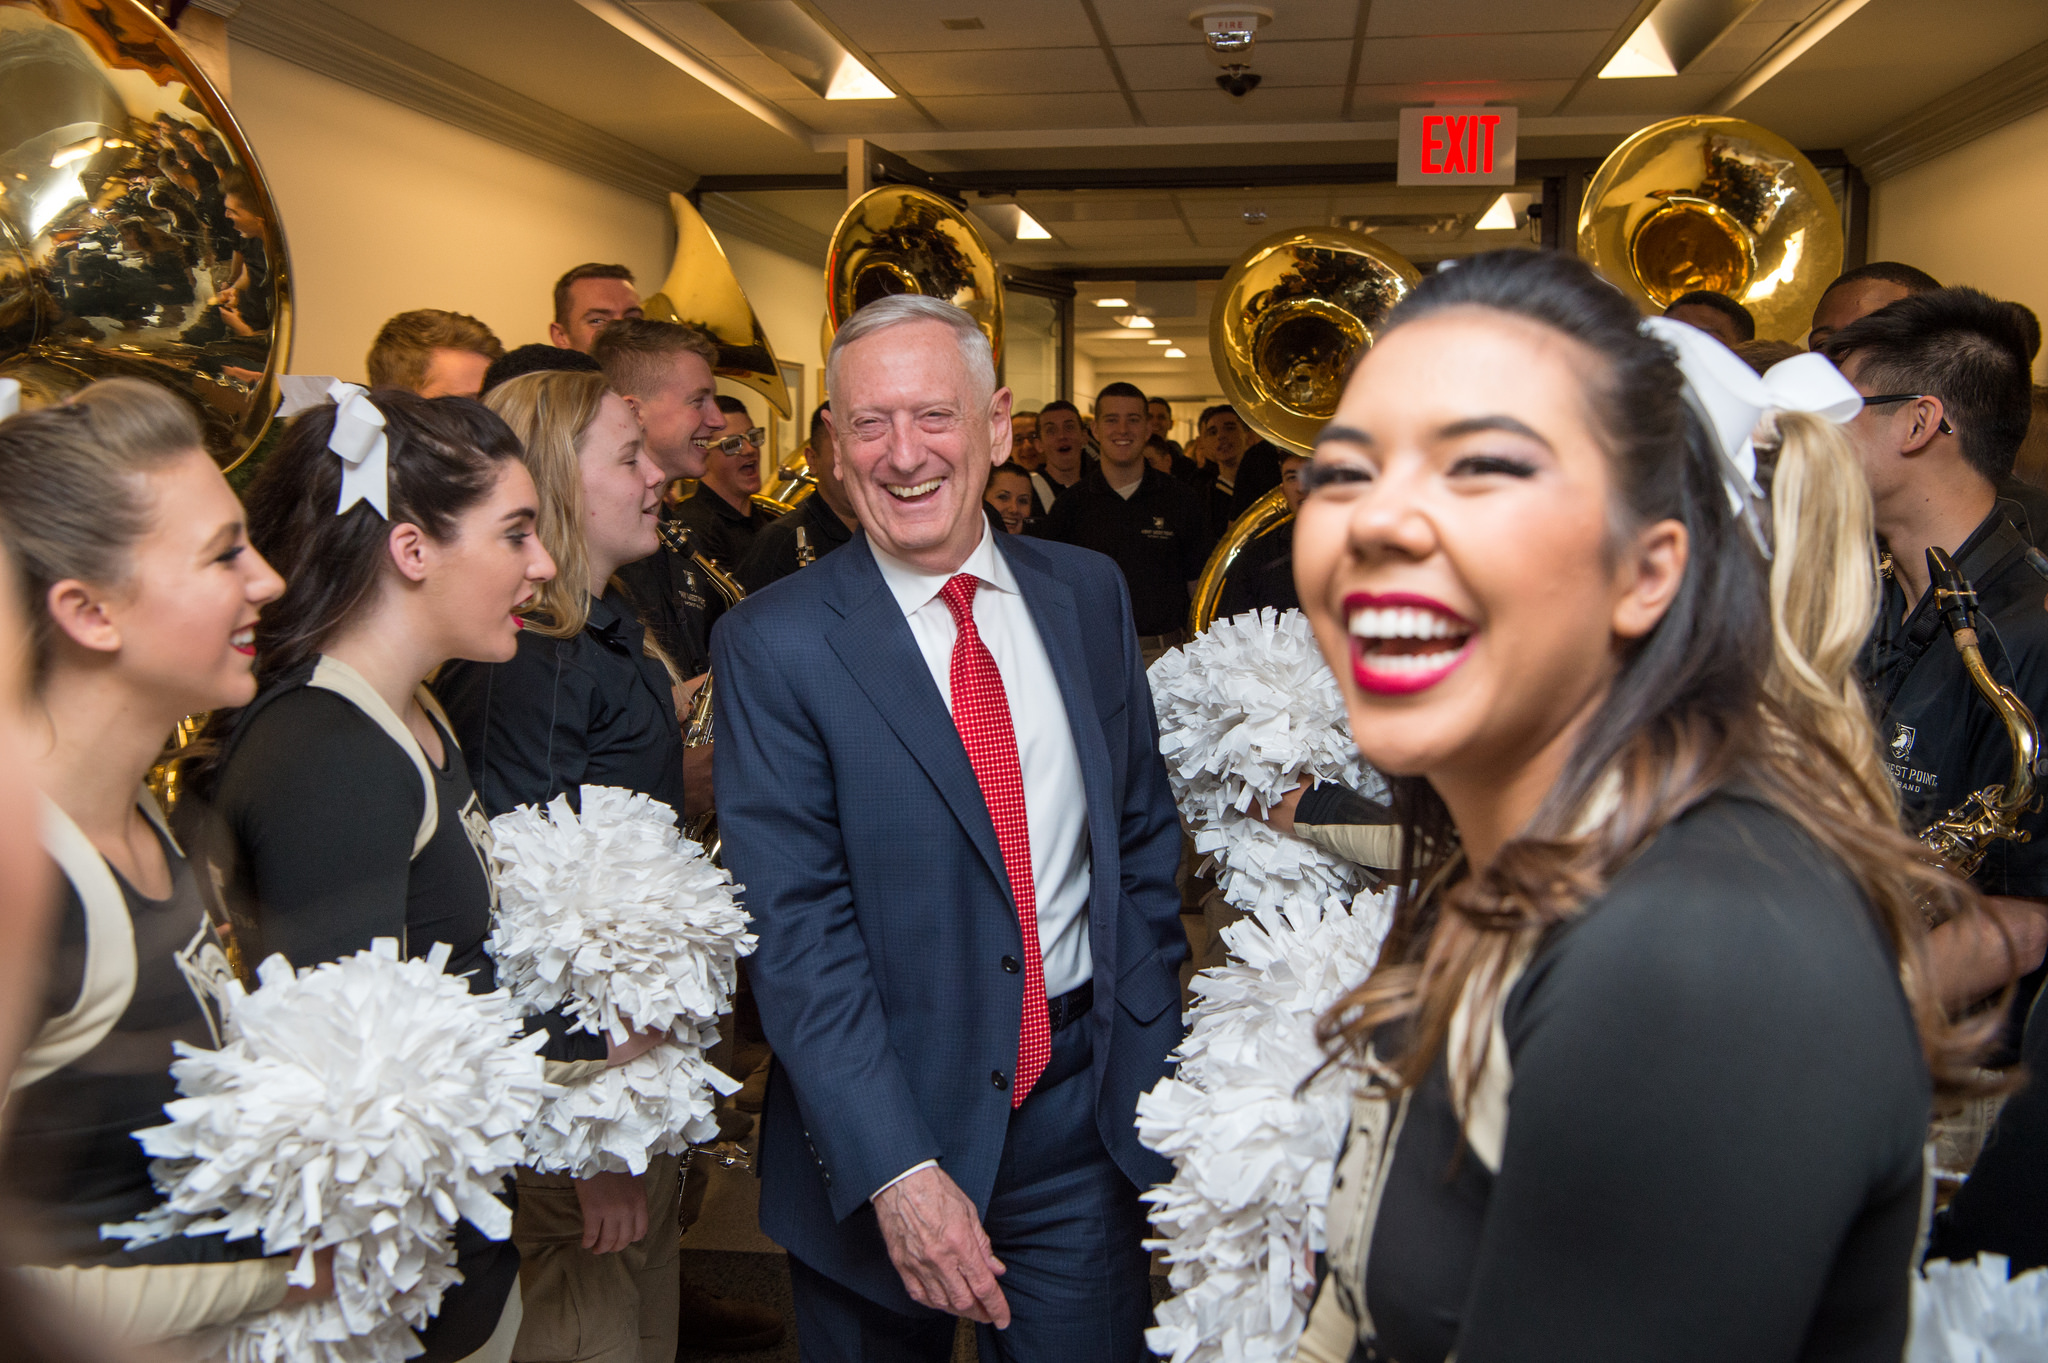 Secretary of Defense James N. Mattis cheers on the U.S. Army football team during a pep rally at the Pentagon on Dec. 8, 2017, in Washington. (Air Force Staff Sgt. Jette Carr/DoD)